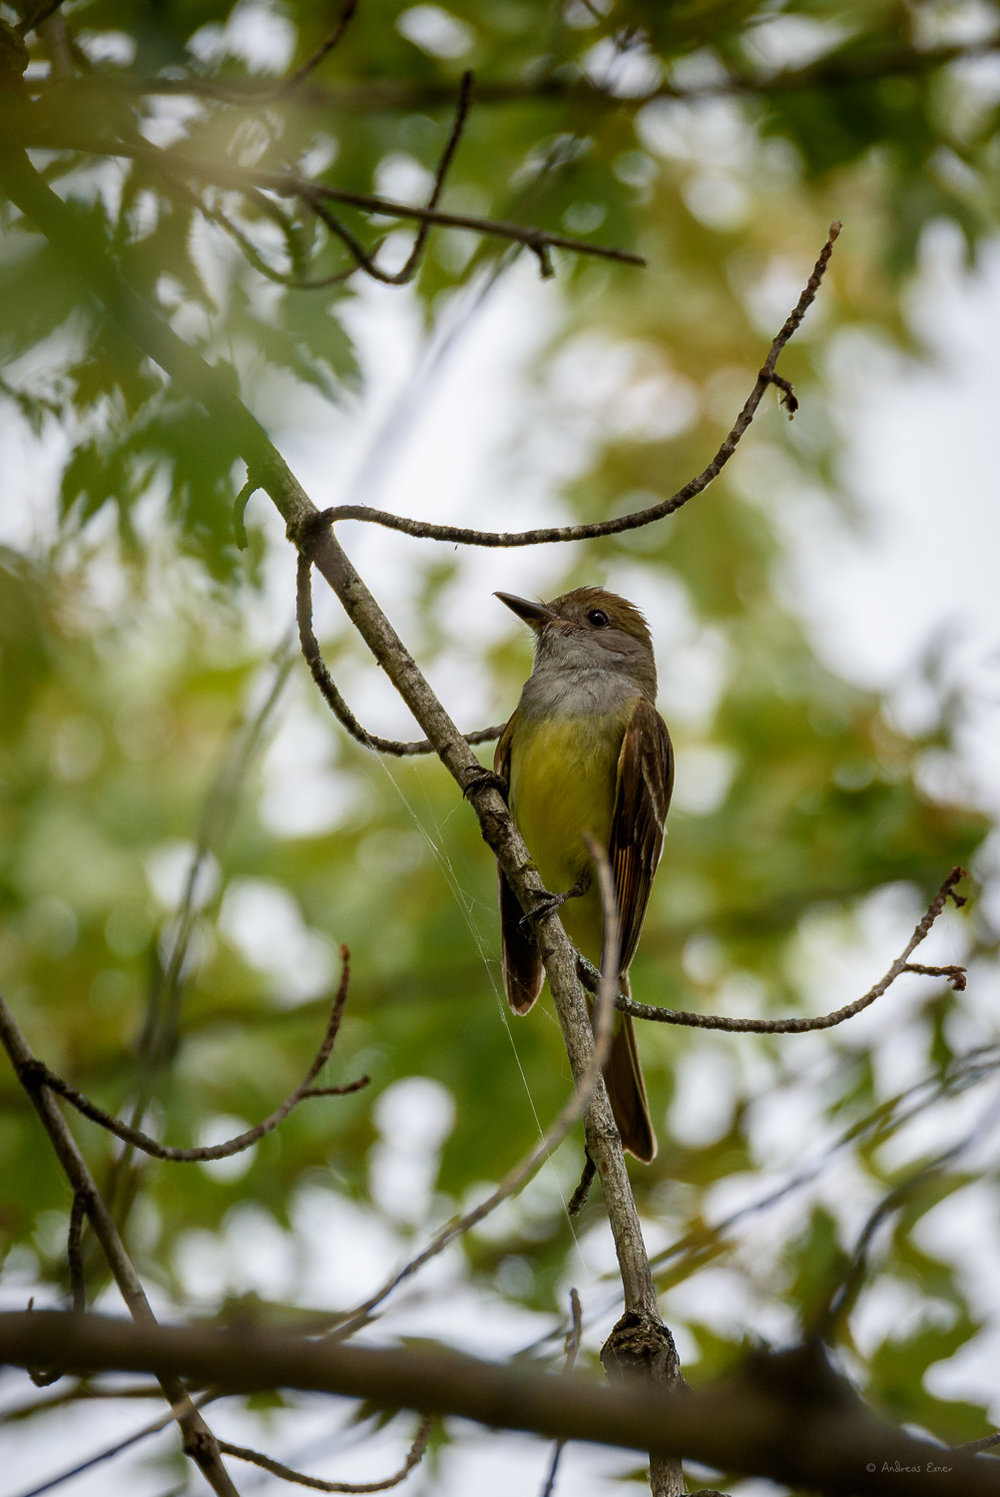 Great Crested Flycatcher, Mississippi River, Green Island Wetlands, Iowa